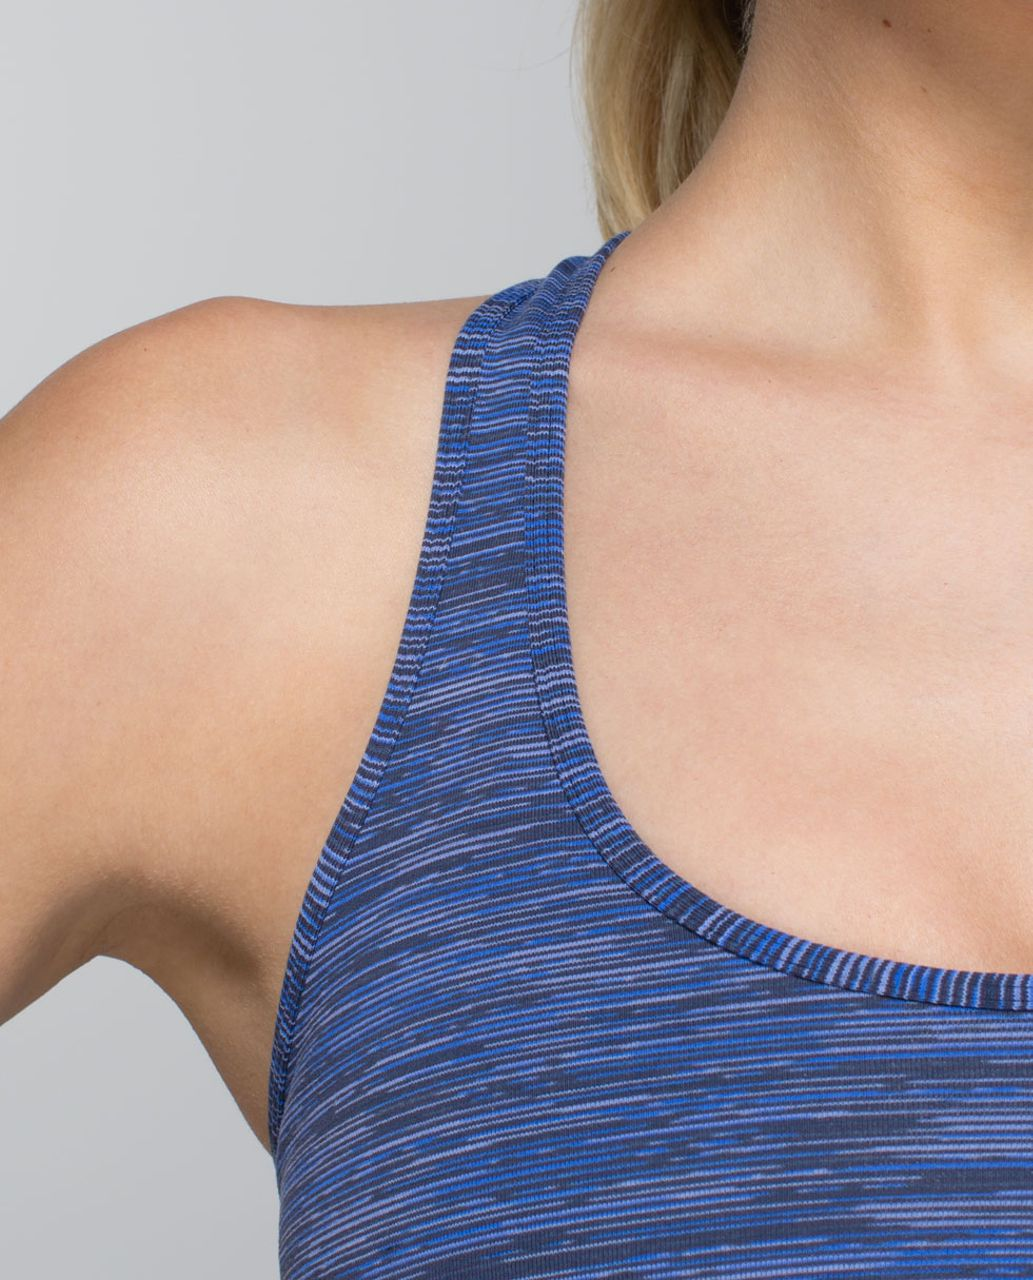 Lululemon Cool Racerback - Wee Are From Space Cadet Blue